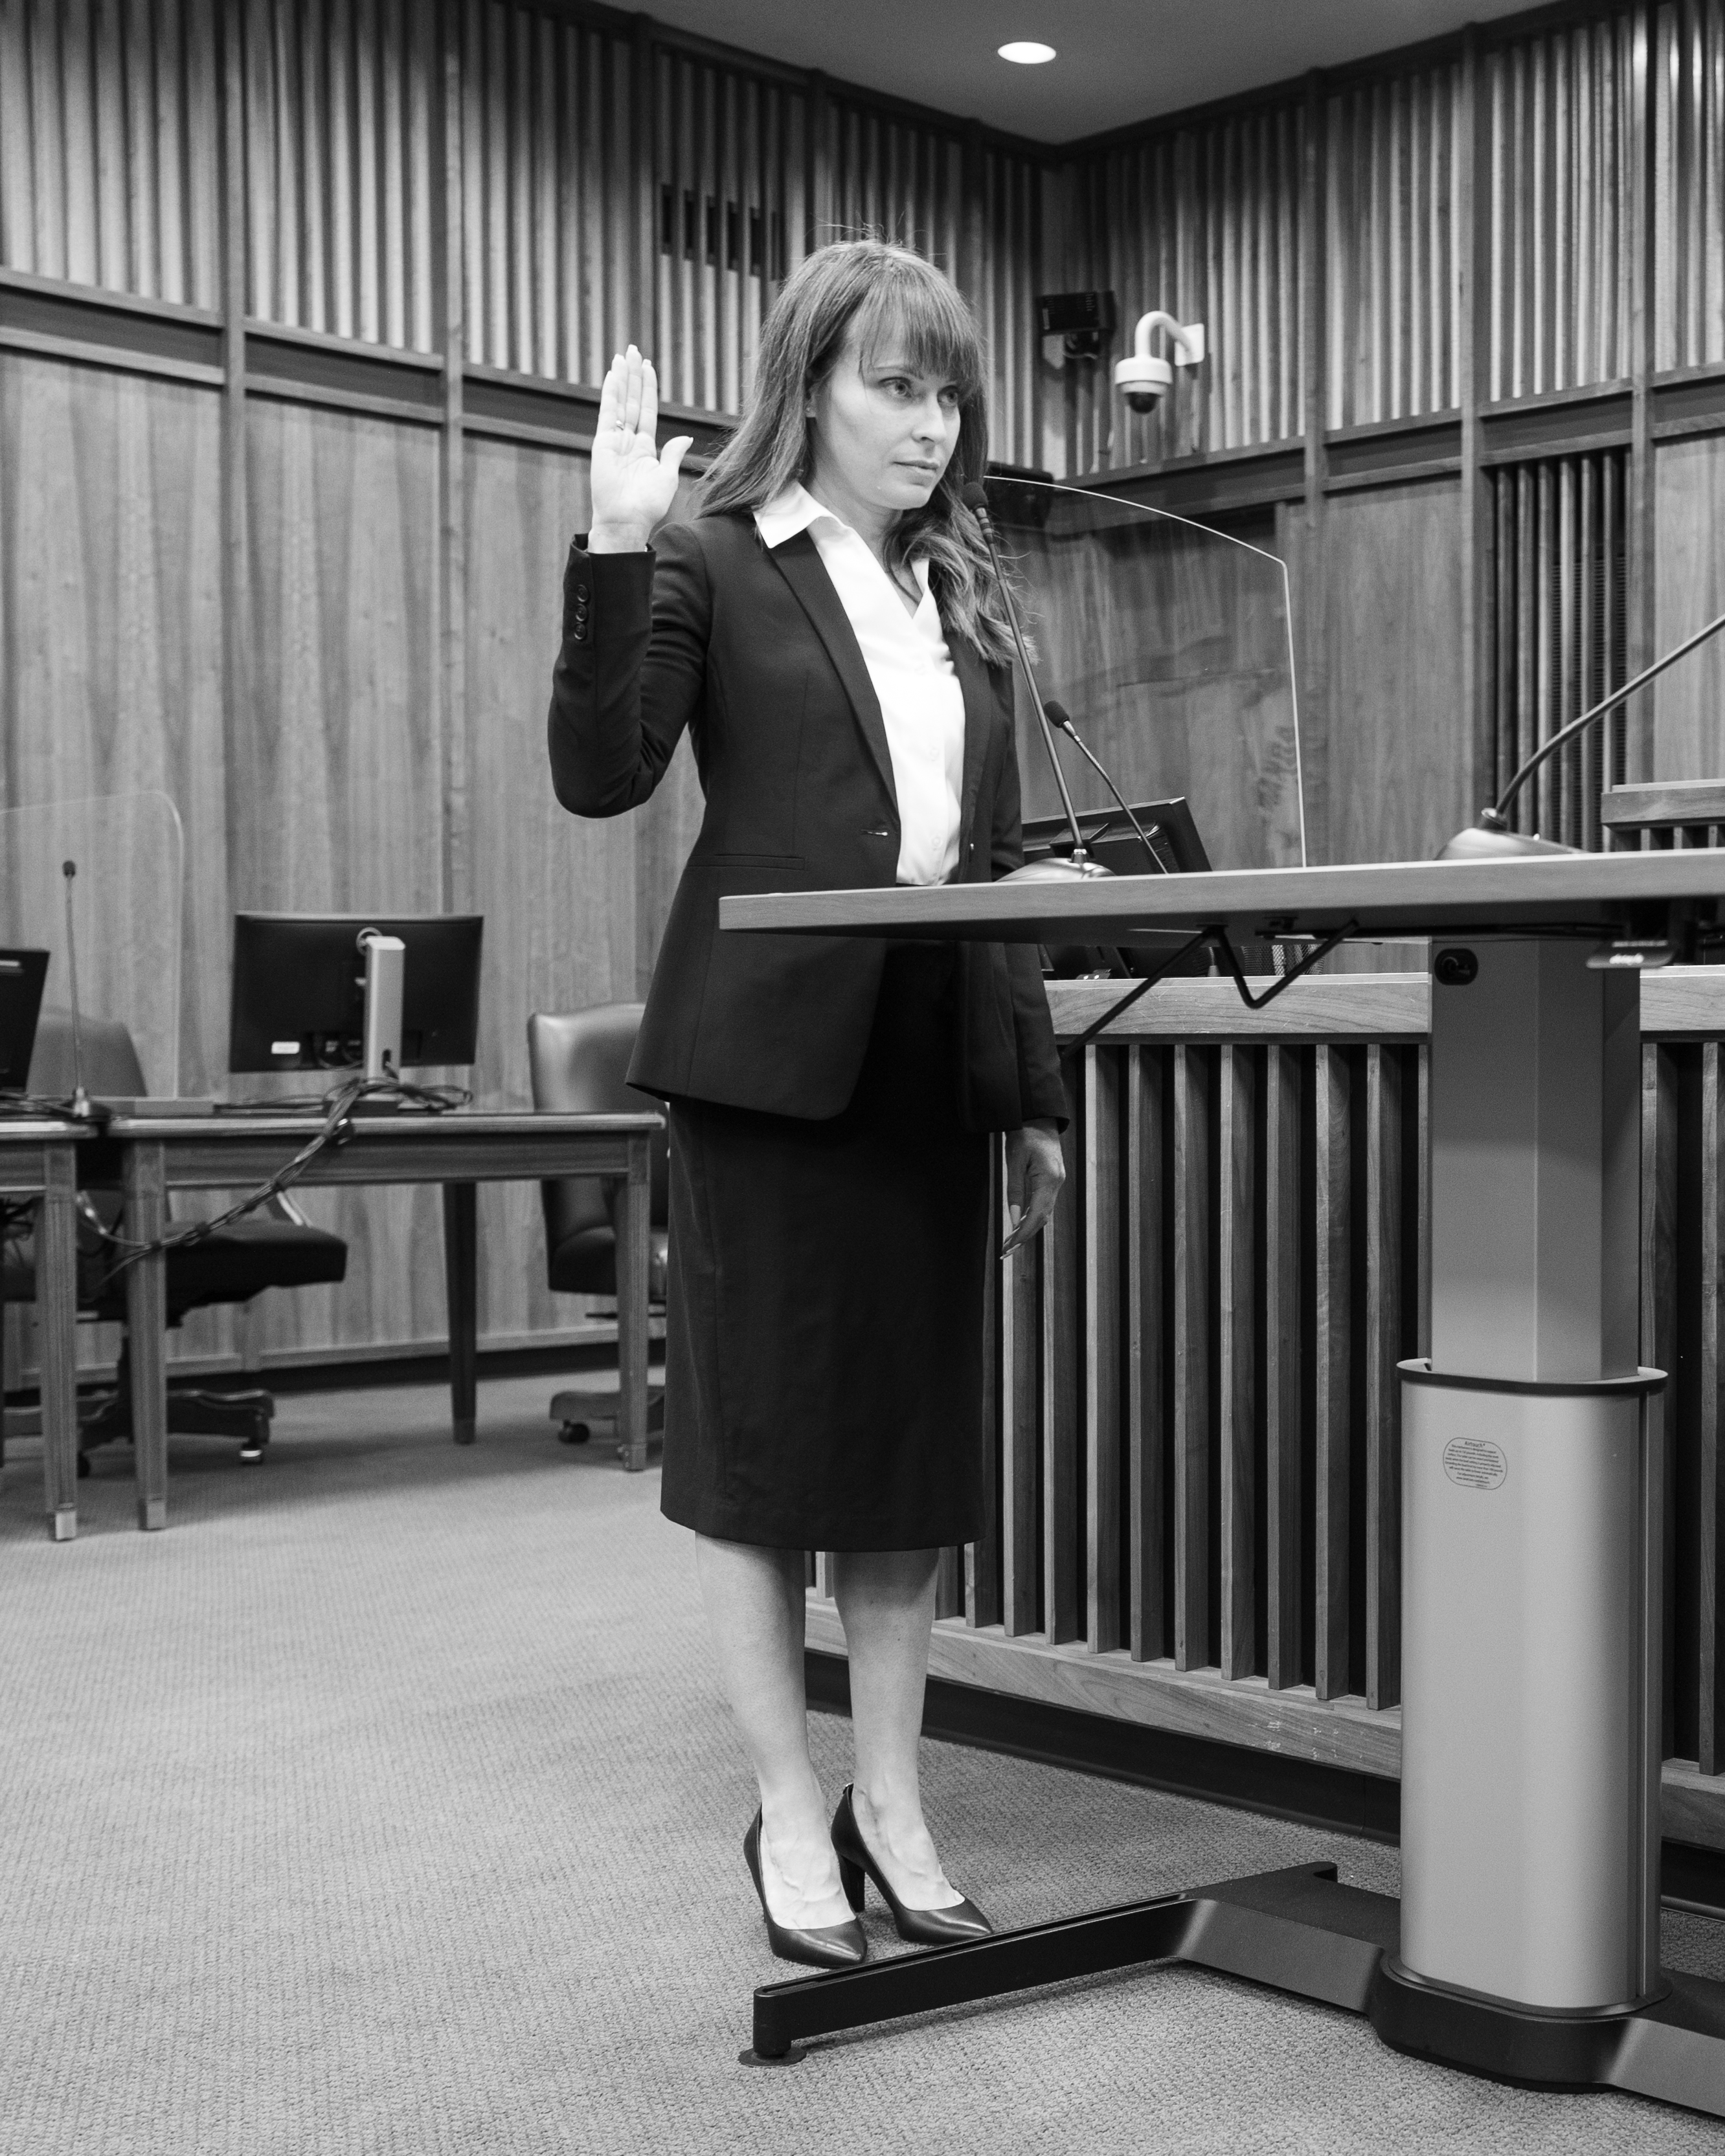 Bianca Gatchell Rucker is sworn in as the U.S. Bankruptcy Judge for the Eastern and Western Districts of Arkansas on April 26.